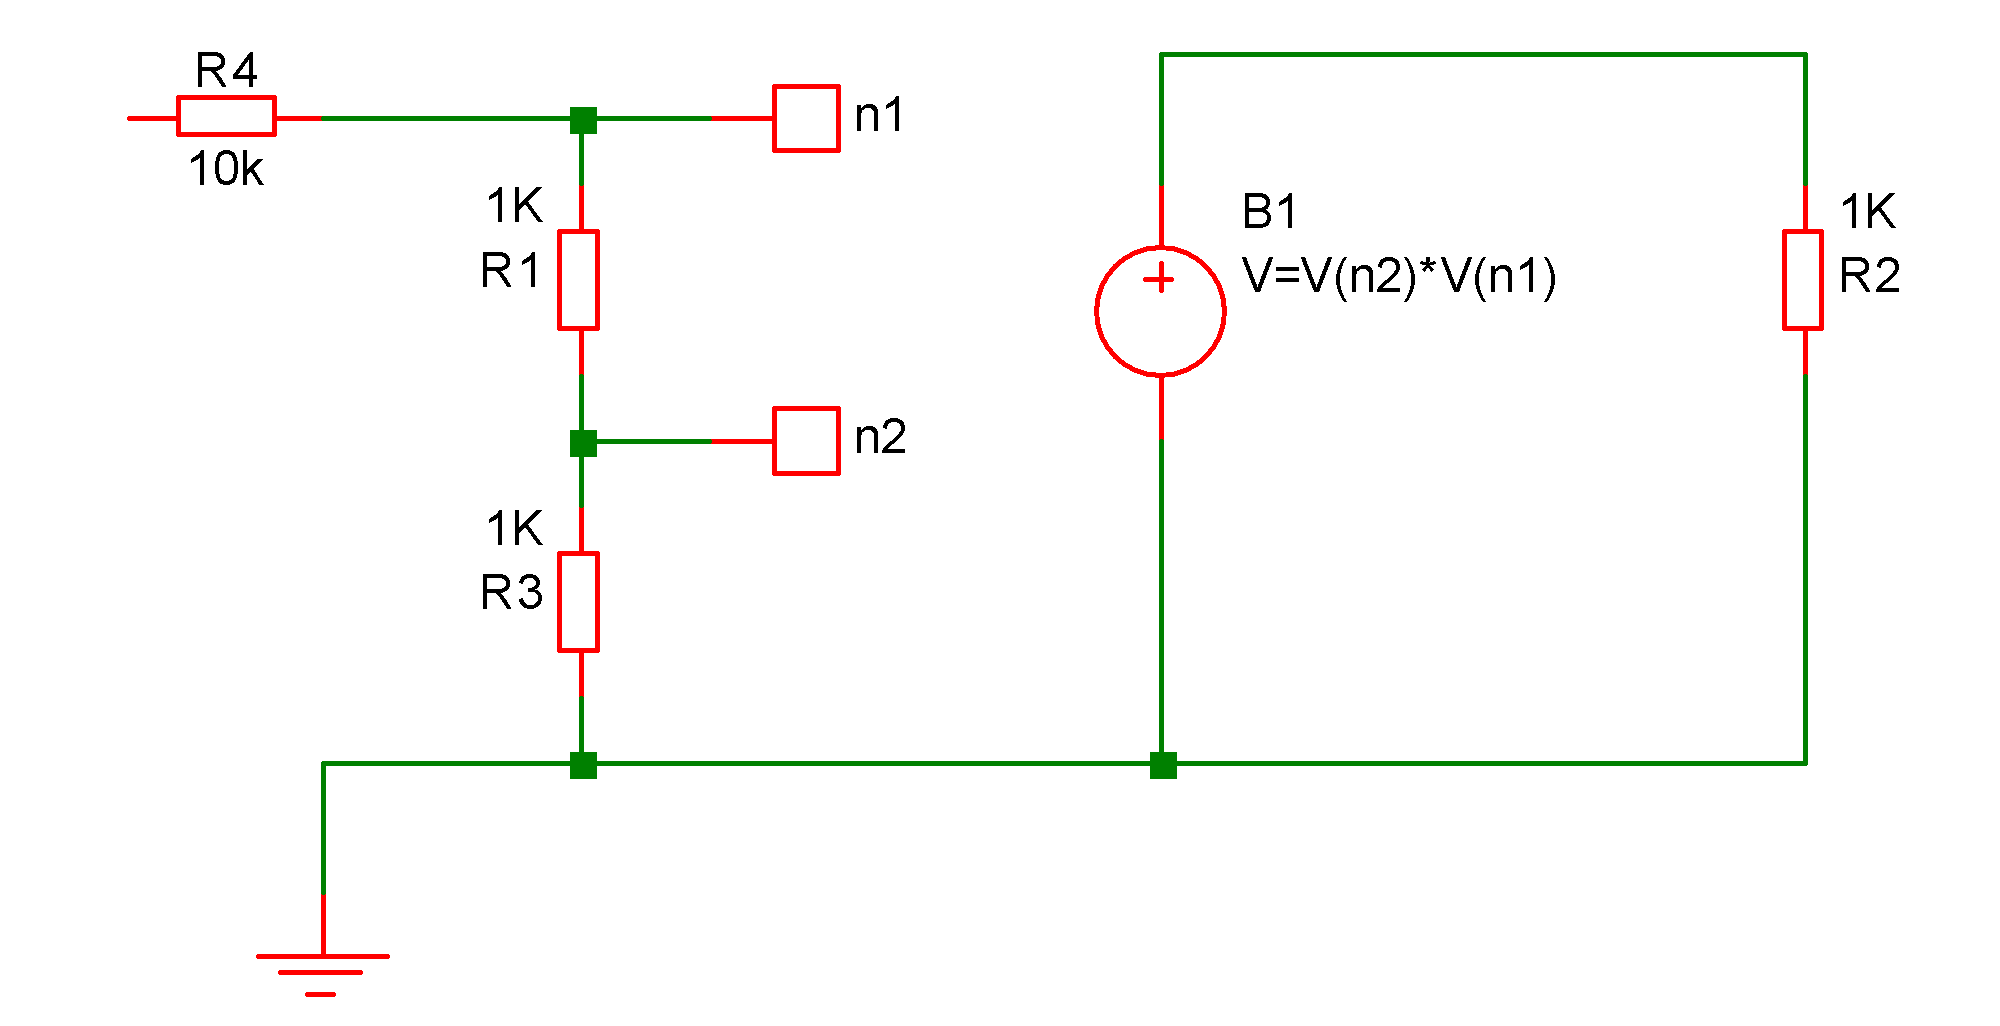 Simulator Reference Arbitrary Source Circuit Diagram Voltage In The Above Across B1 Will Be Equal To Product Of Voltages At Nodes N1 And N2